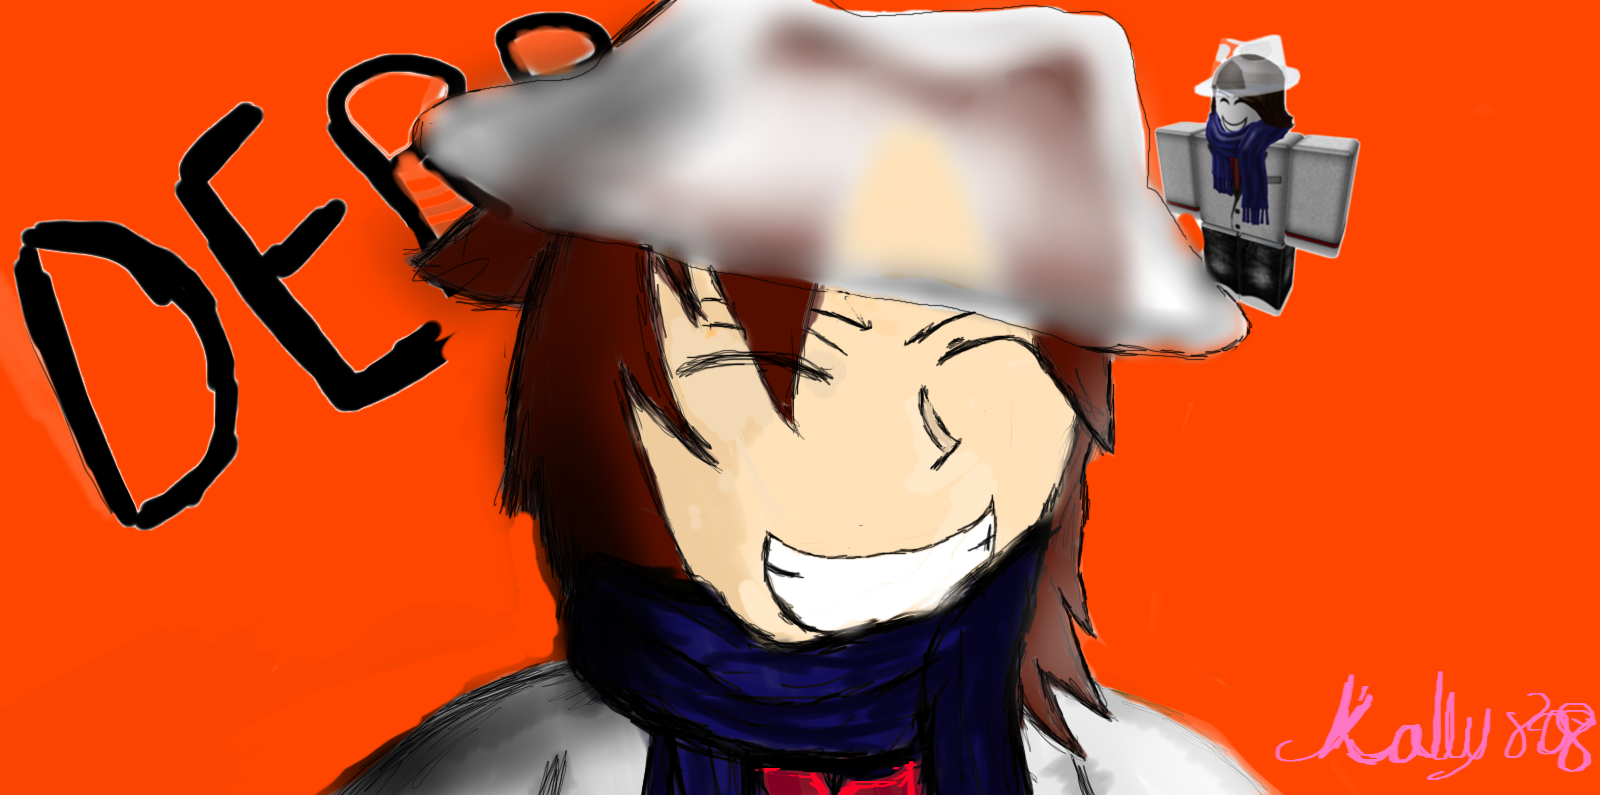 Roblox Character Anime Drawing Roblox Fan Art Daremetosingasong Drawing Roblox Character Art By Kally808 On